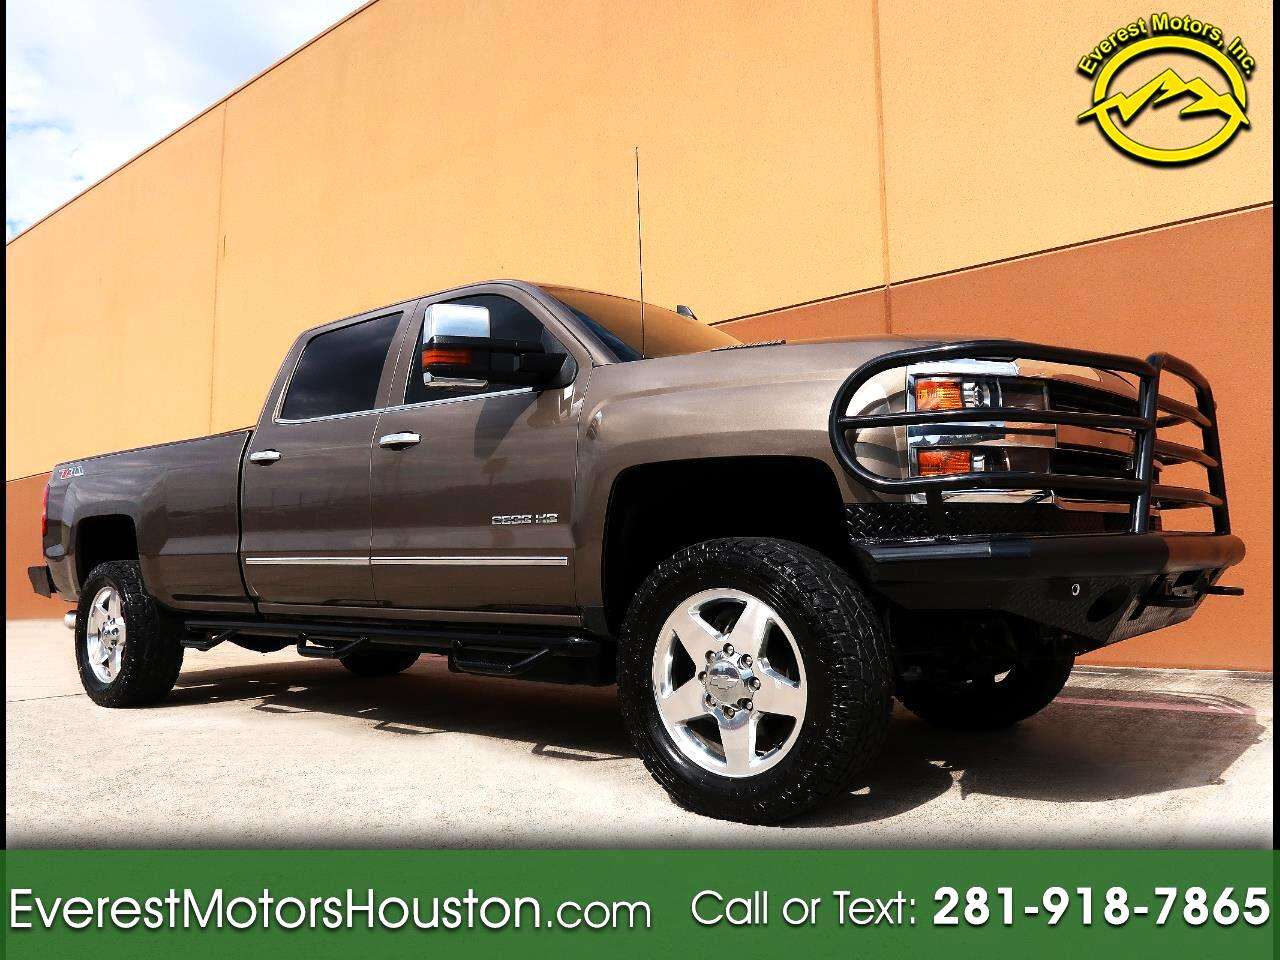 2015 Chevrolet Silverado 2500HD 4WD Crew Cab Long Bed LTZ Z71 1-Owner